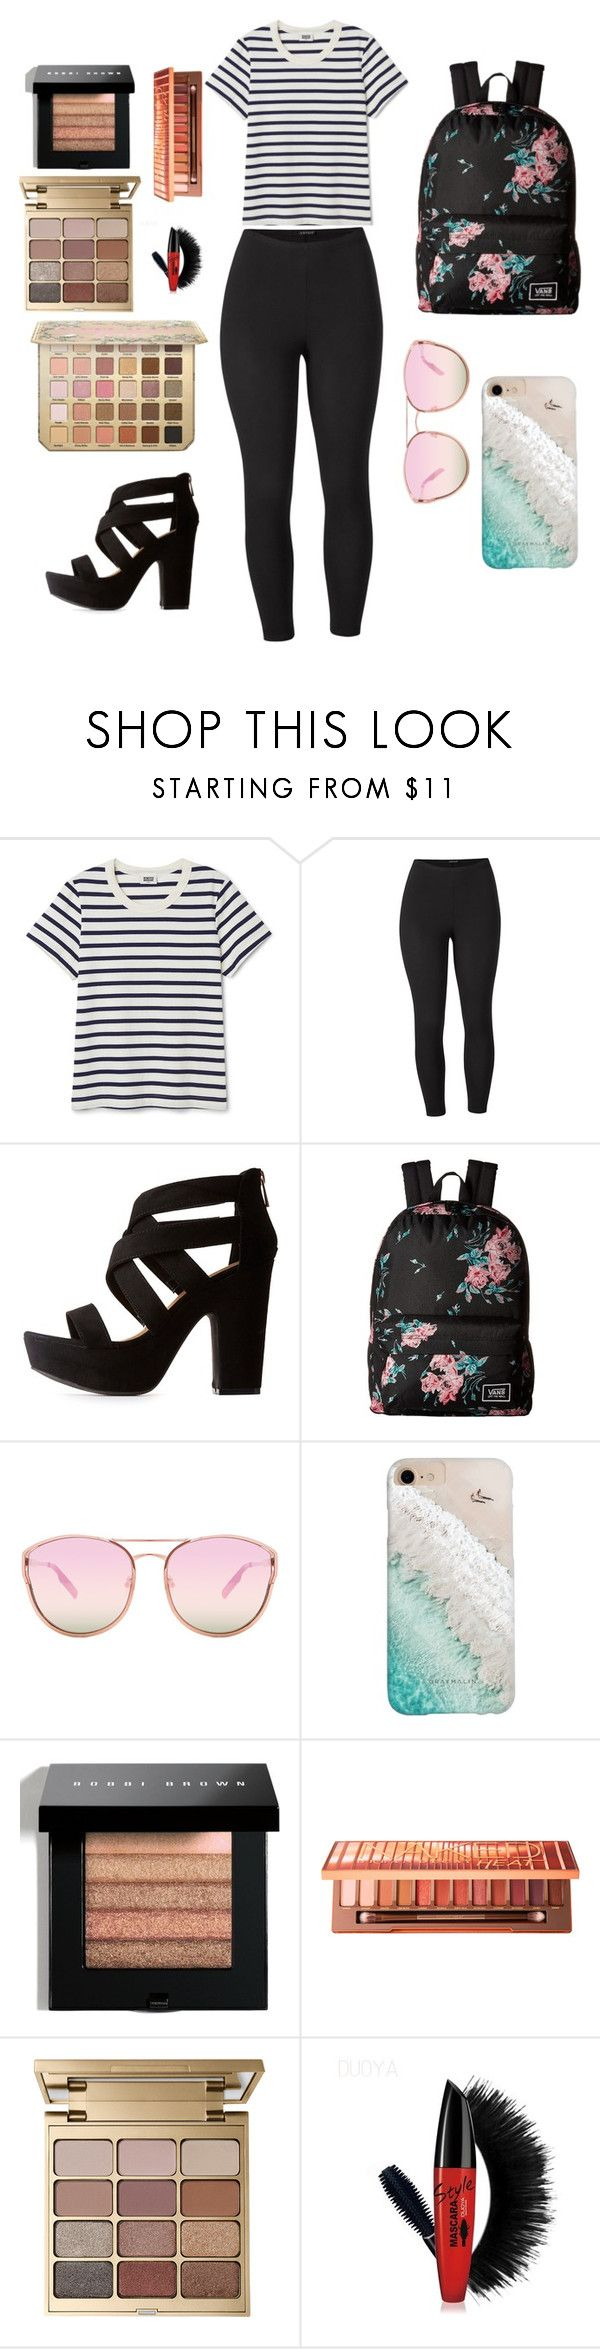 """""""Casual day"""" by vaca77 ❤ liked on Polyvore featuring Venus, Bamboo, Vans, Quay, Gray Malin, Bobbi Brown Cosmetics, Urban Decay, Stila and plus size clothing"""